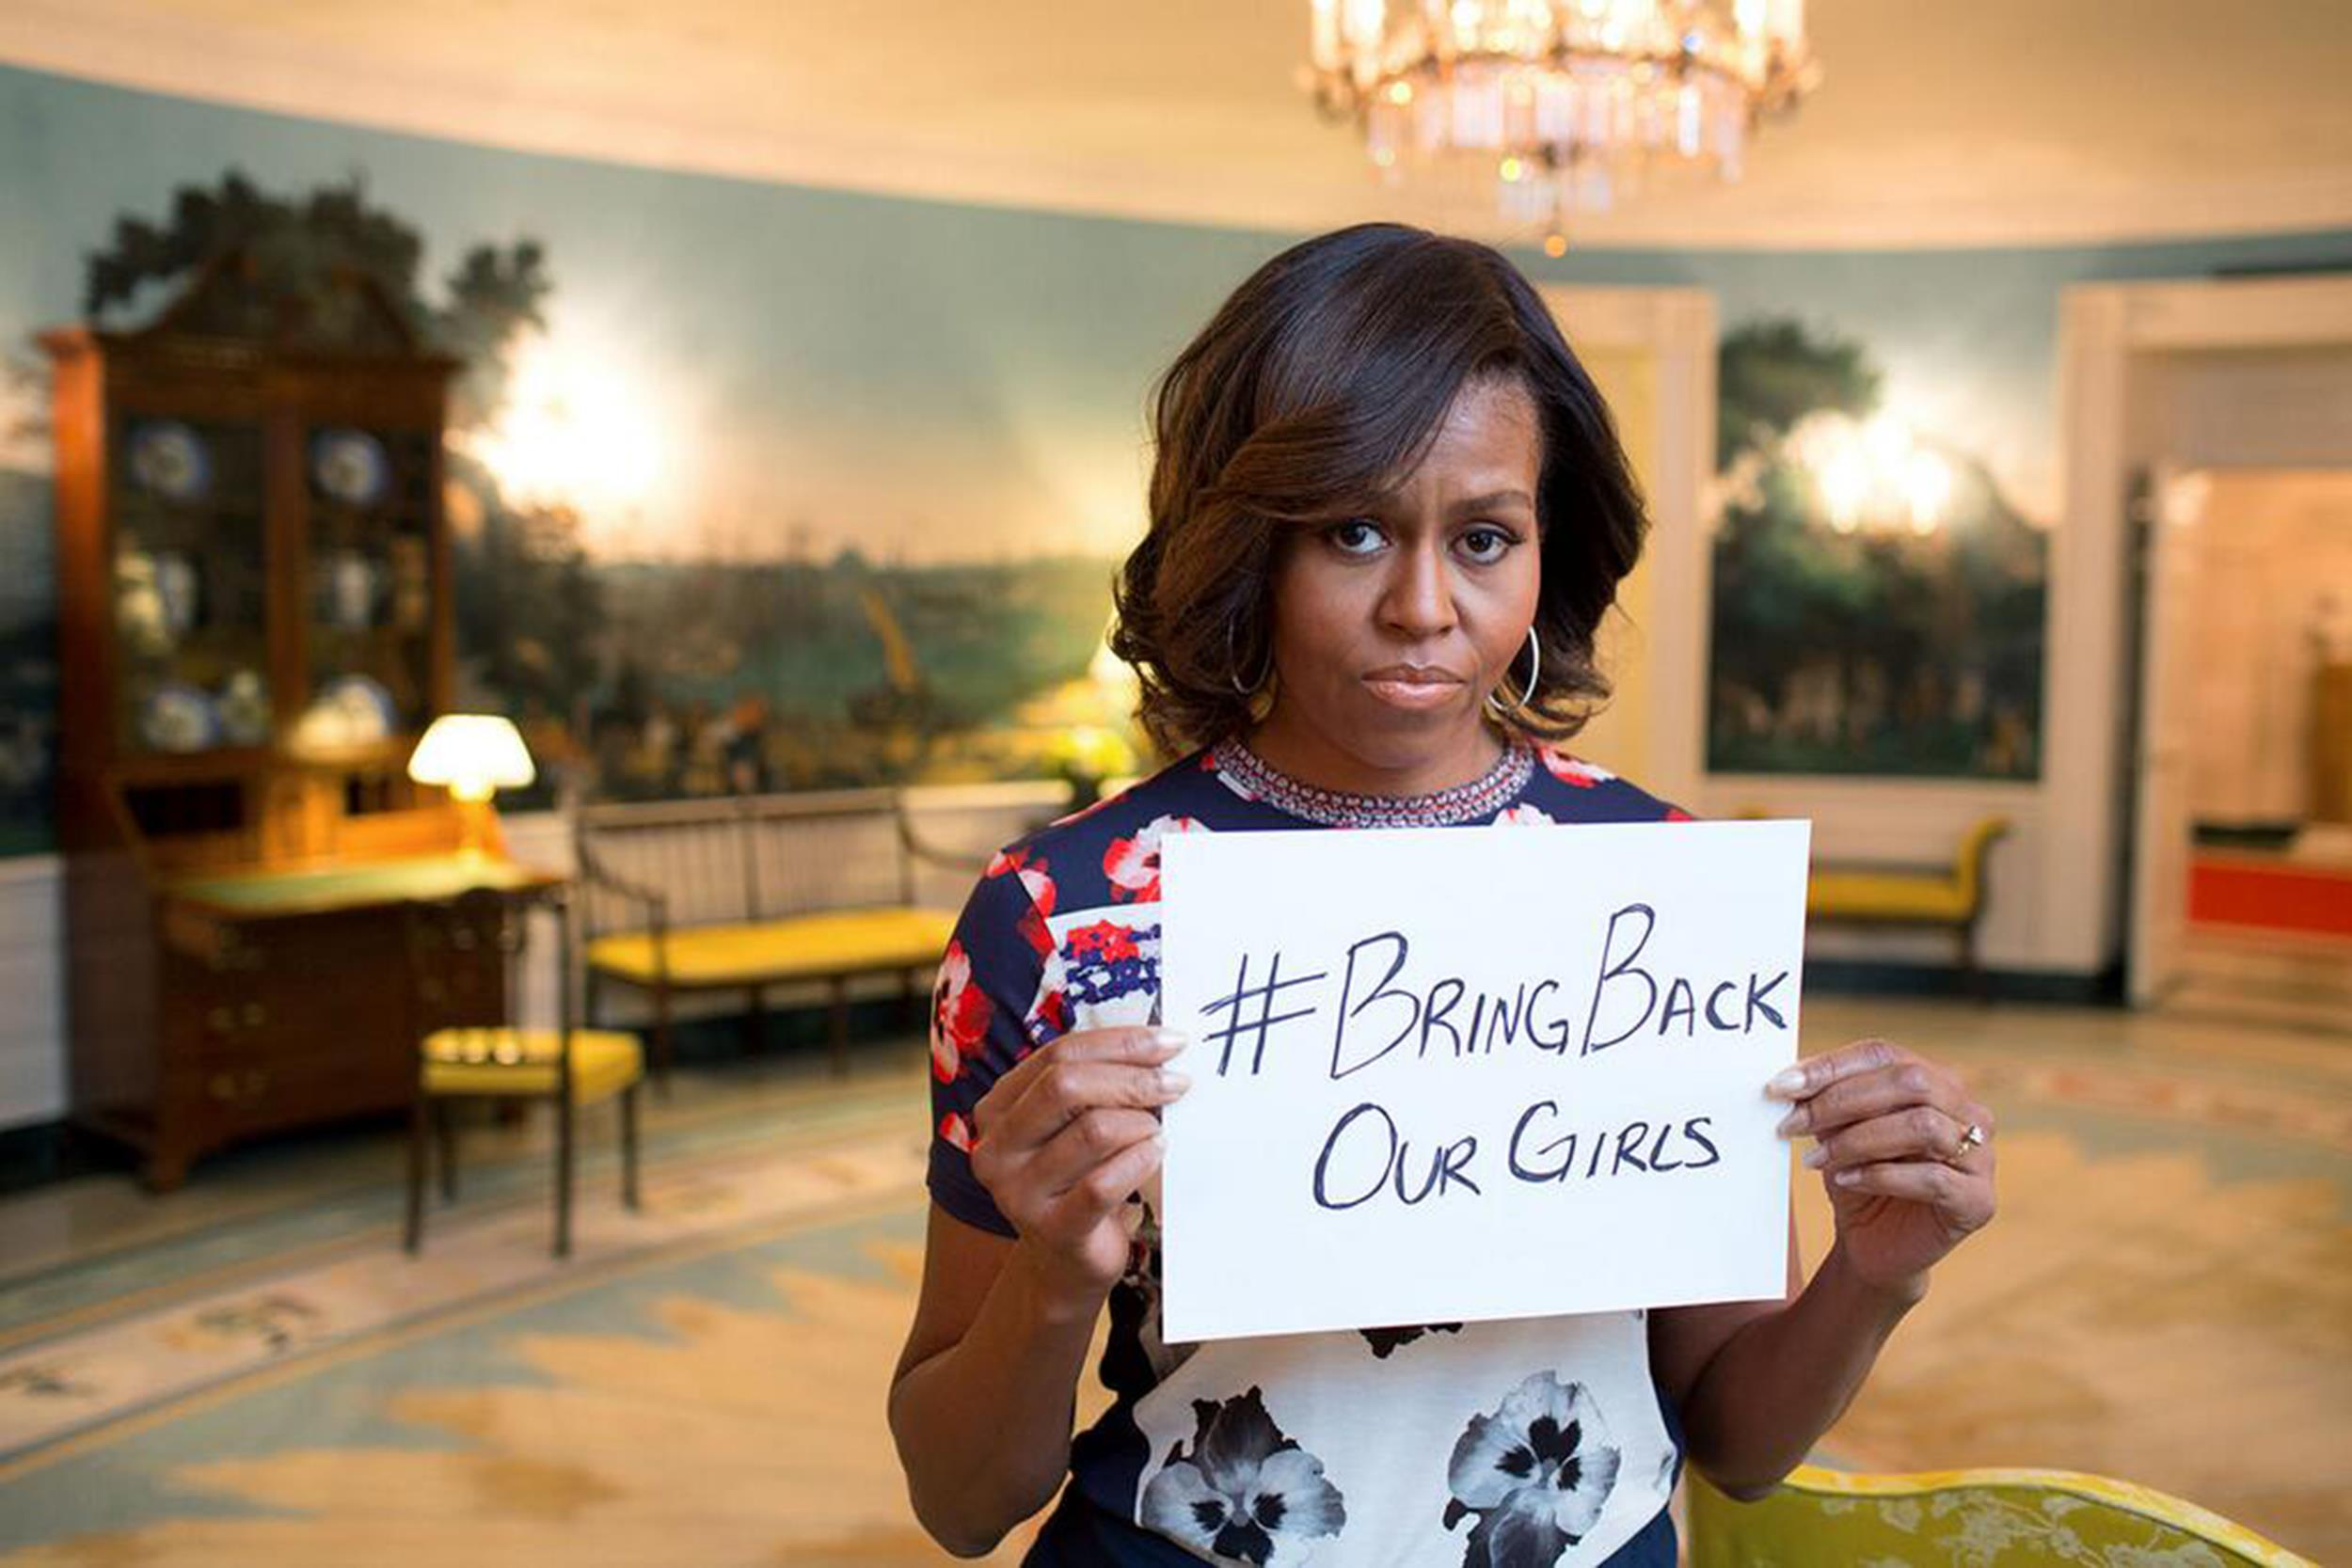 Michelle Obama Tweets Message of Support for Missing Nigerian Girls ...